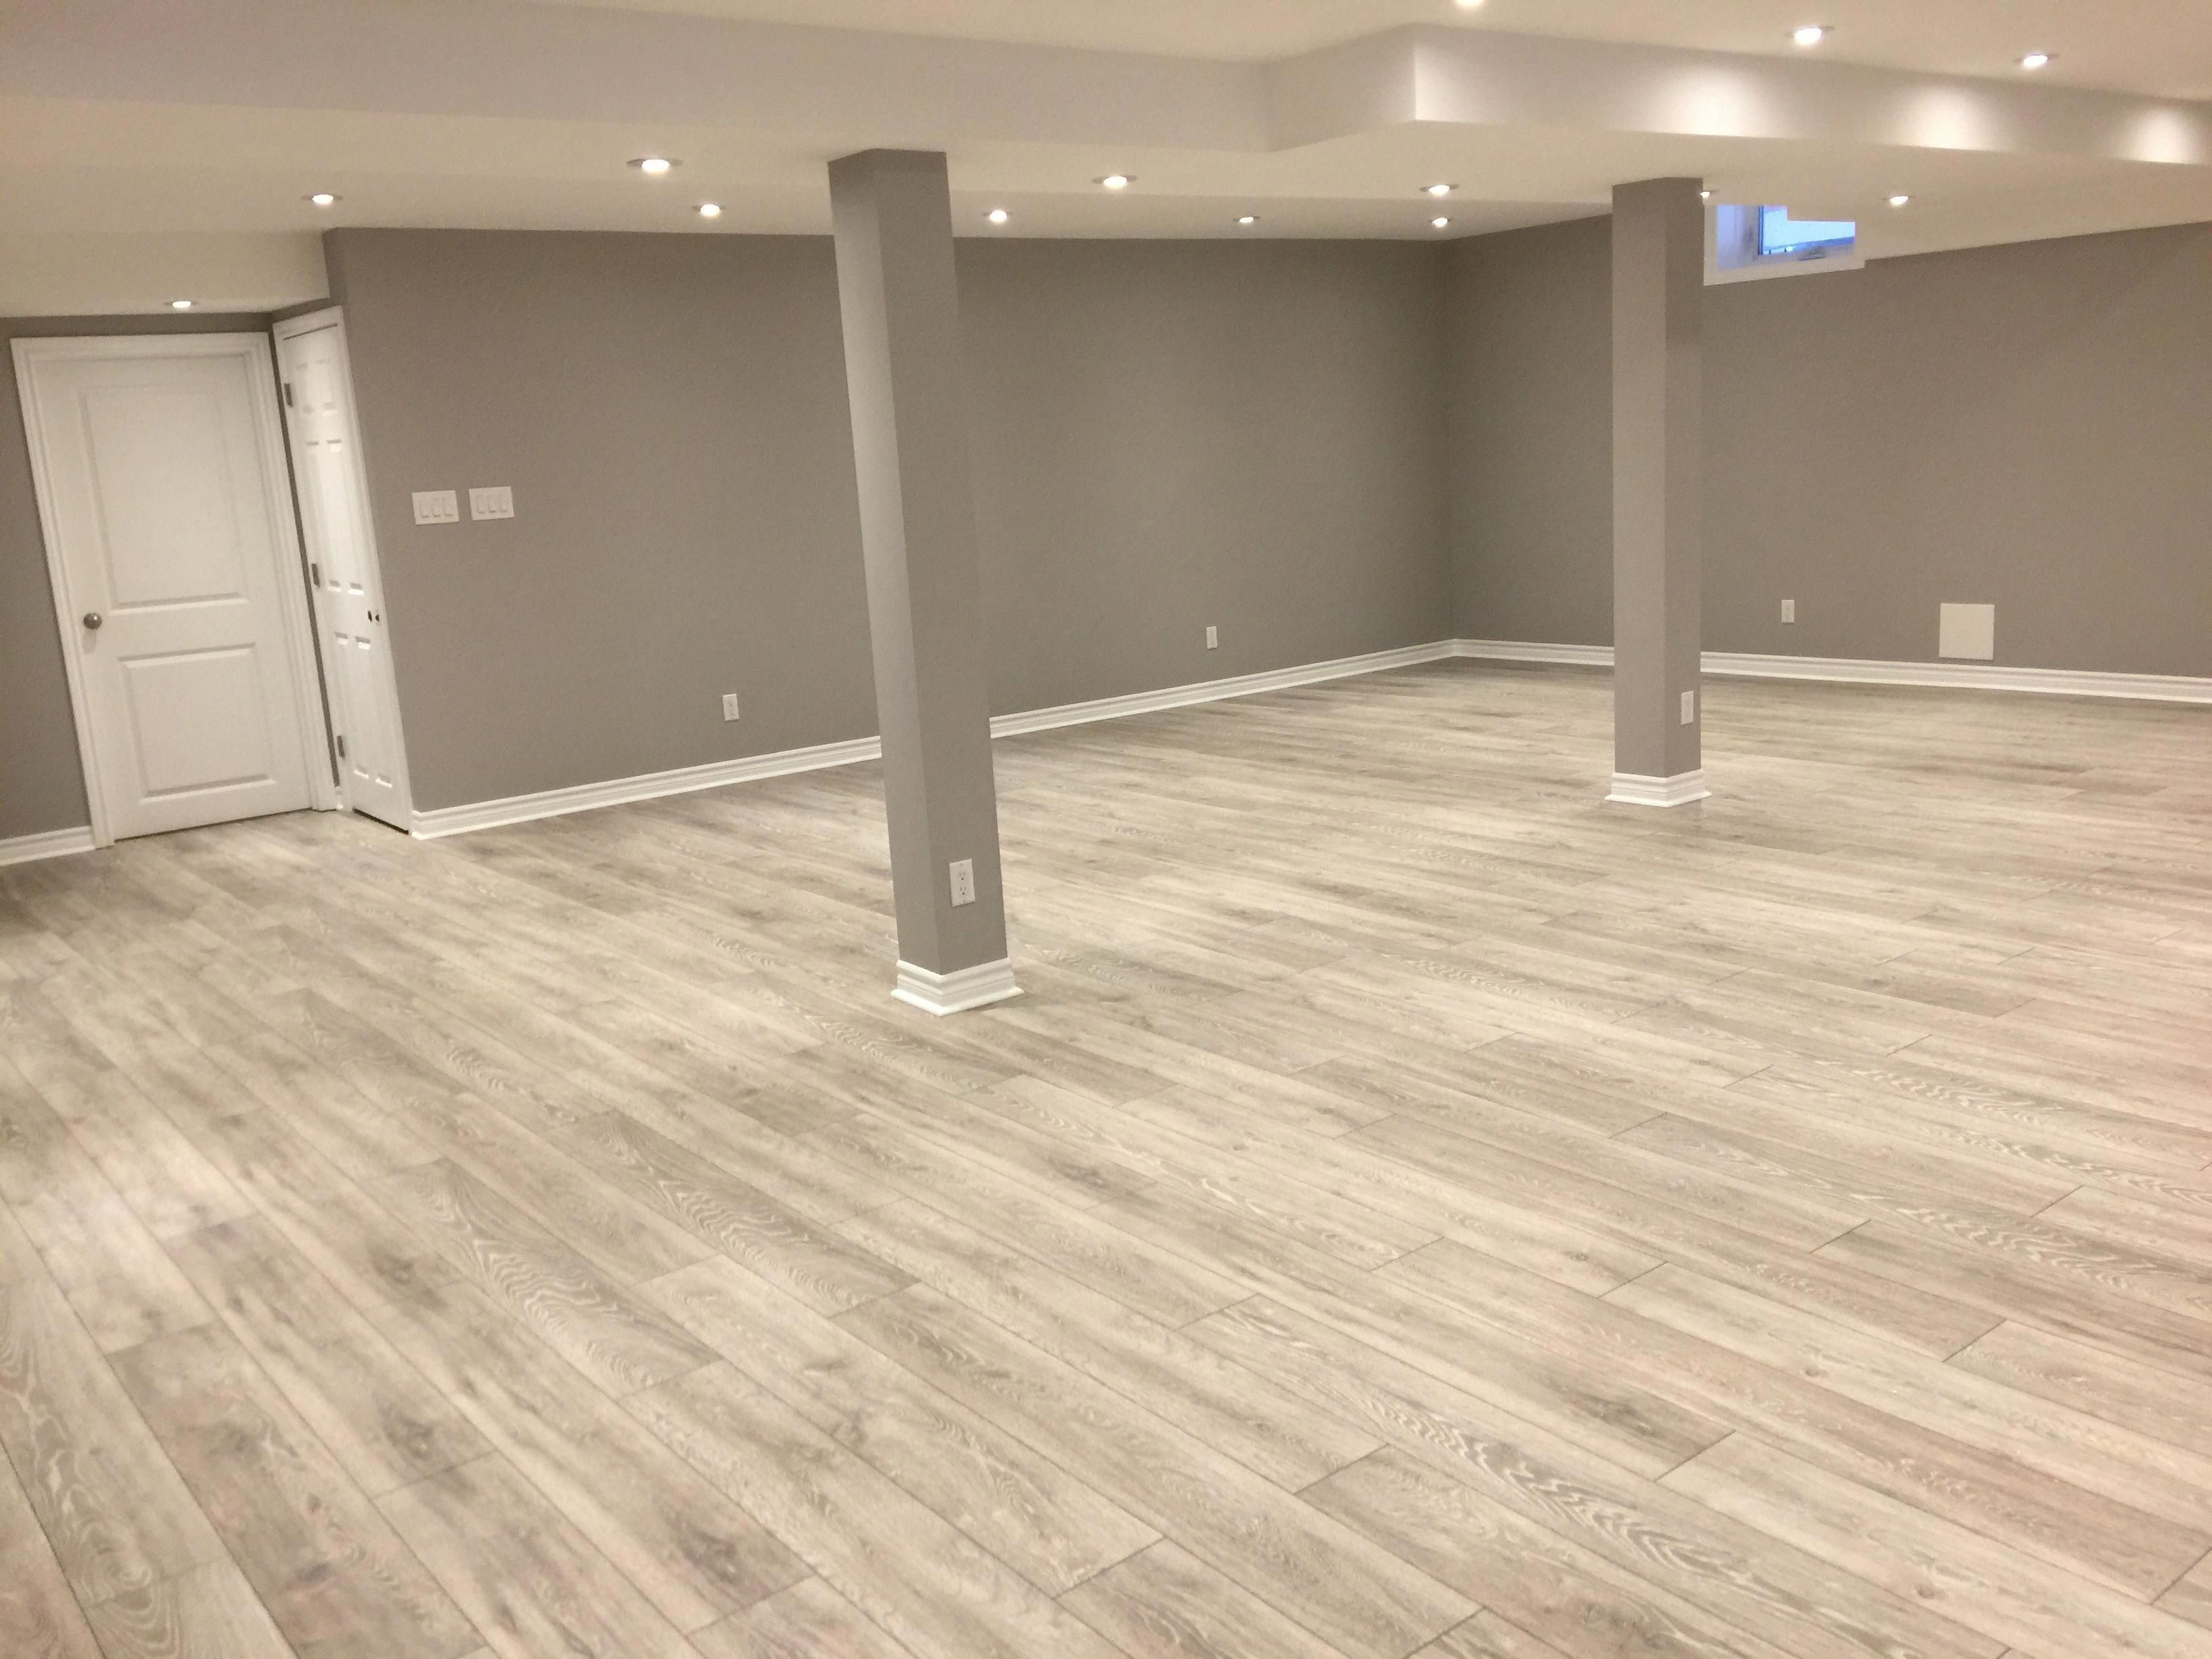 For more comfortable floor covering install some vinyl